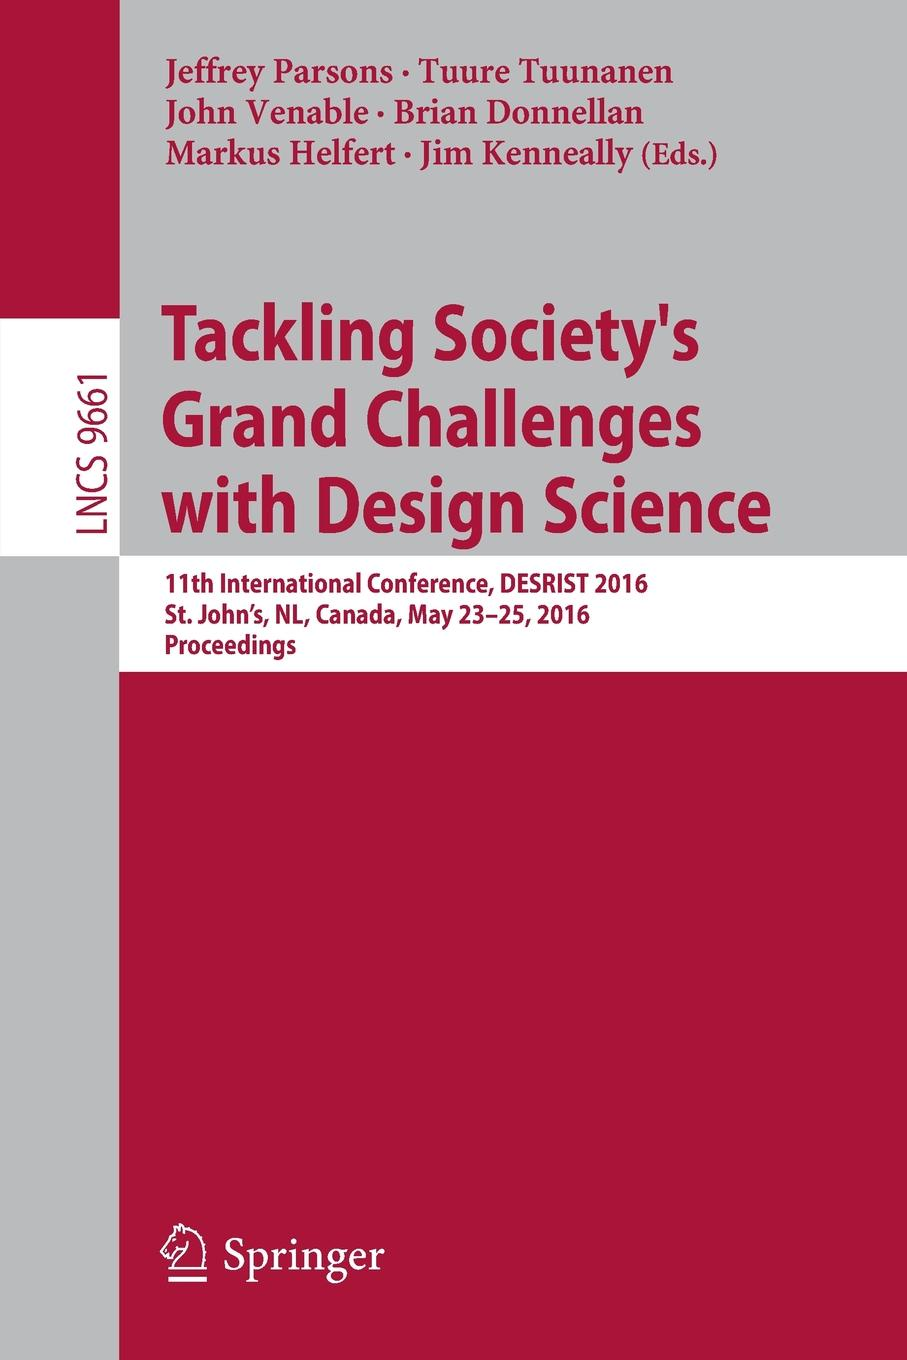 Tackling Society's Grand Challenges with Design Science. 11th International Conference, DESRIST 2016, St. John's, NL, Canada, May 23-25, 2016, Proceedings nl international отзывы о продукции для похудения